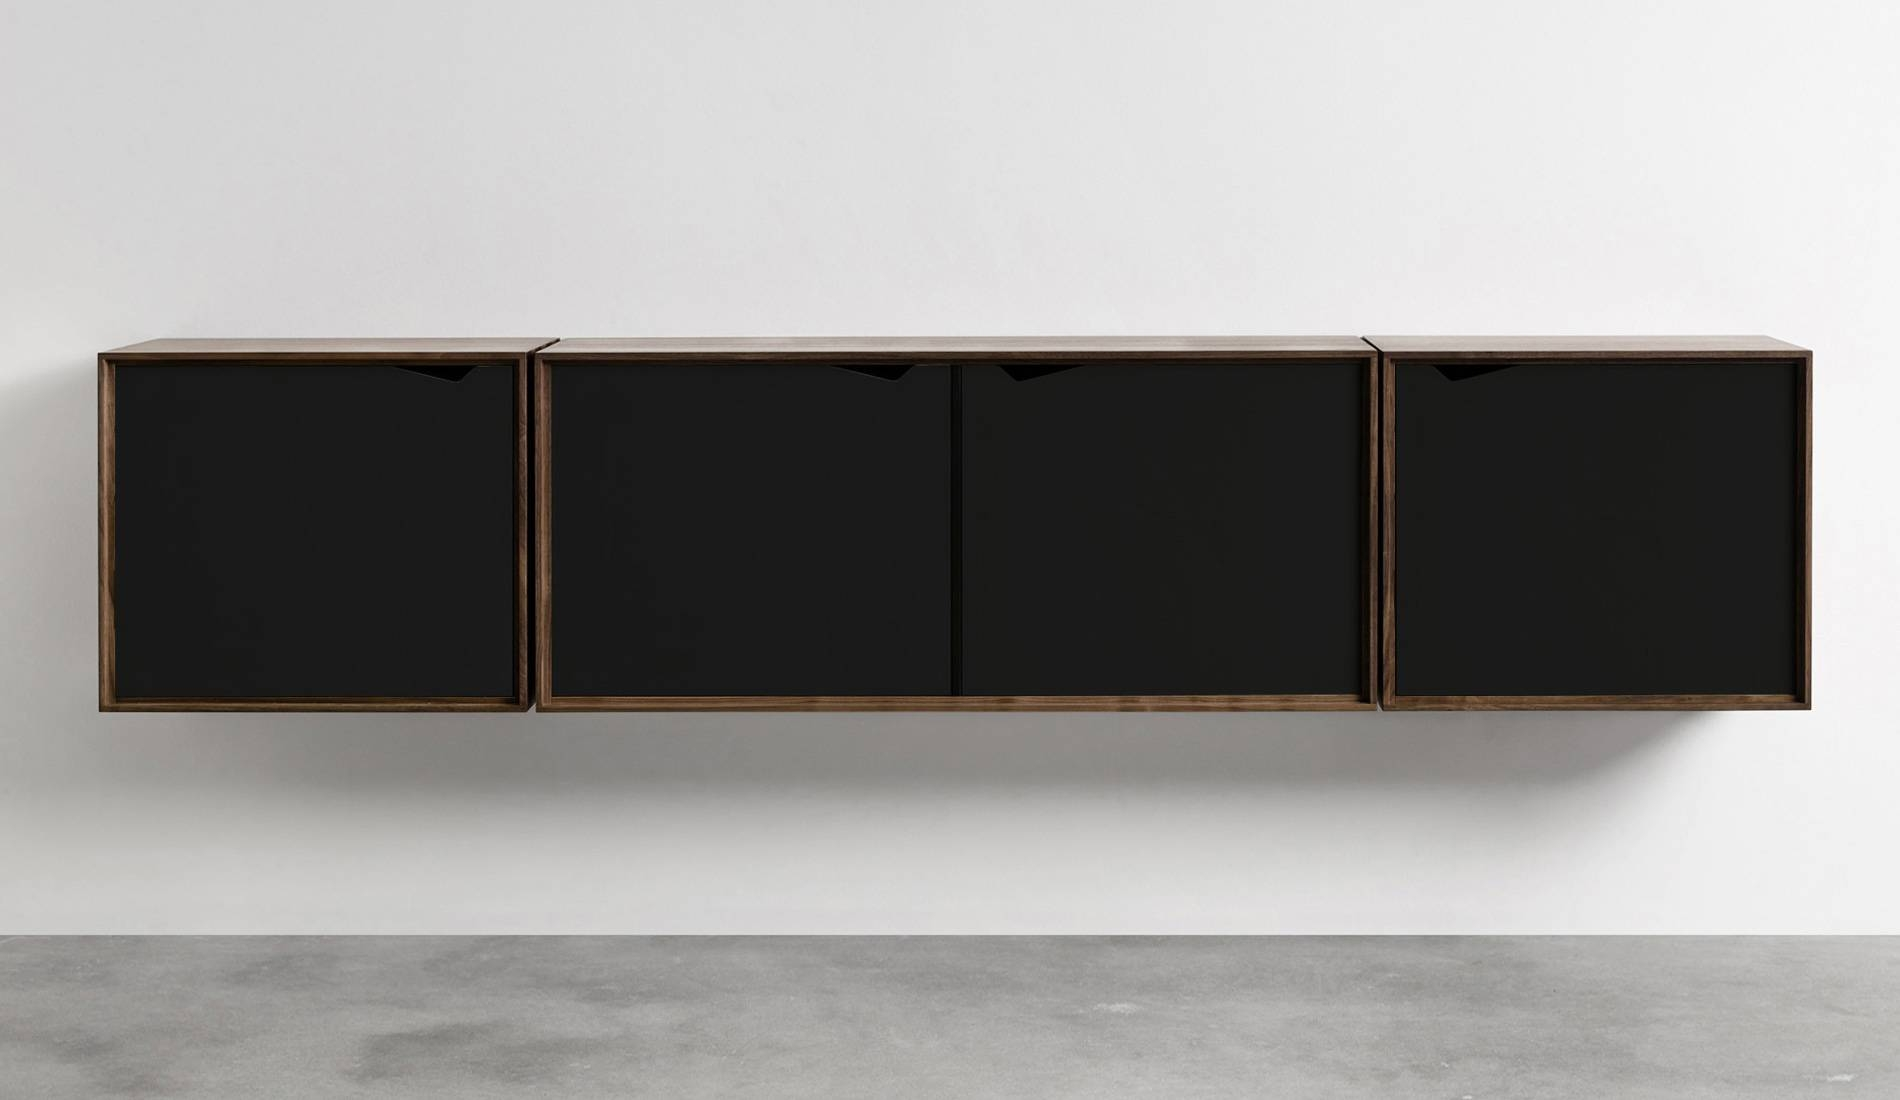 Andersen S2 Walnut / Black Sideboard | Dopo Domani regarding Walnut and Black Sideboards (Image 2 of 30)